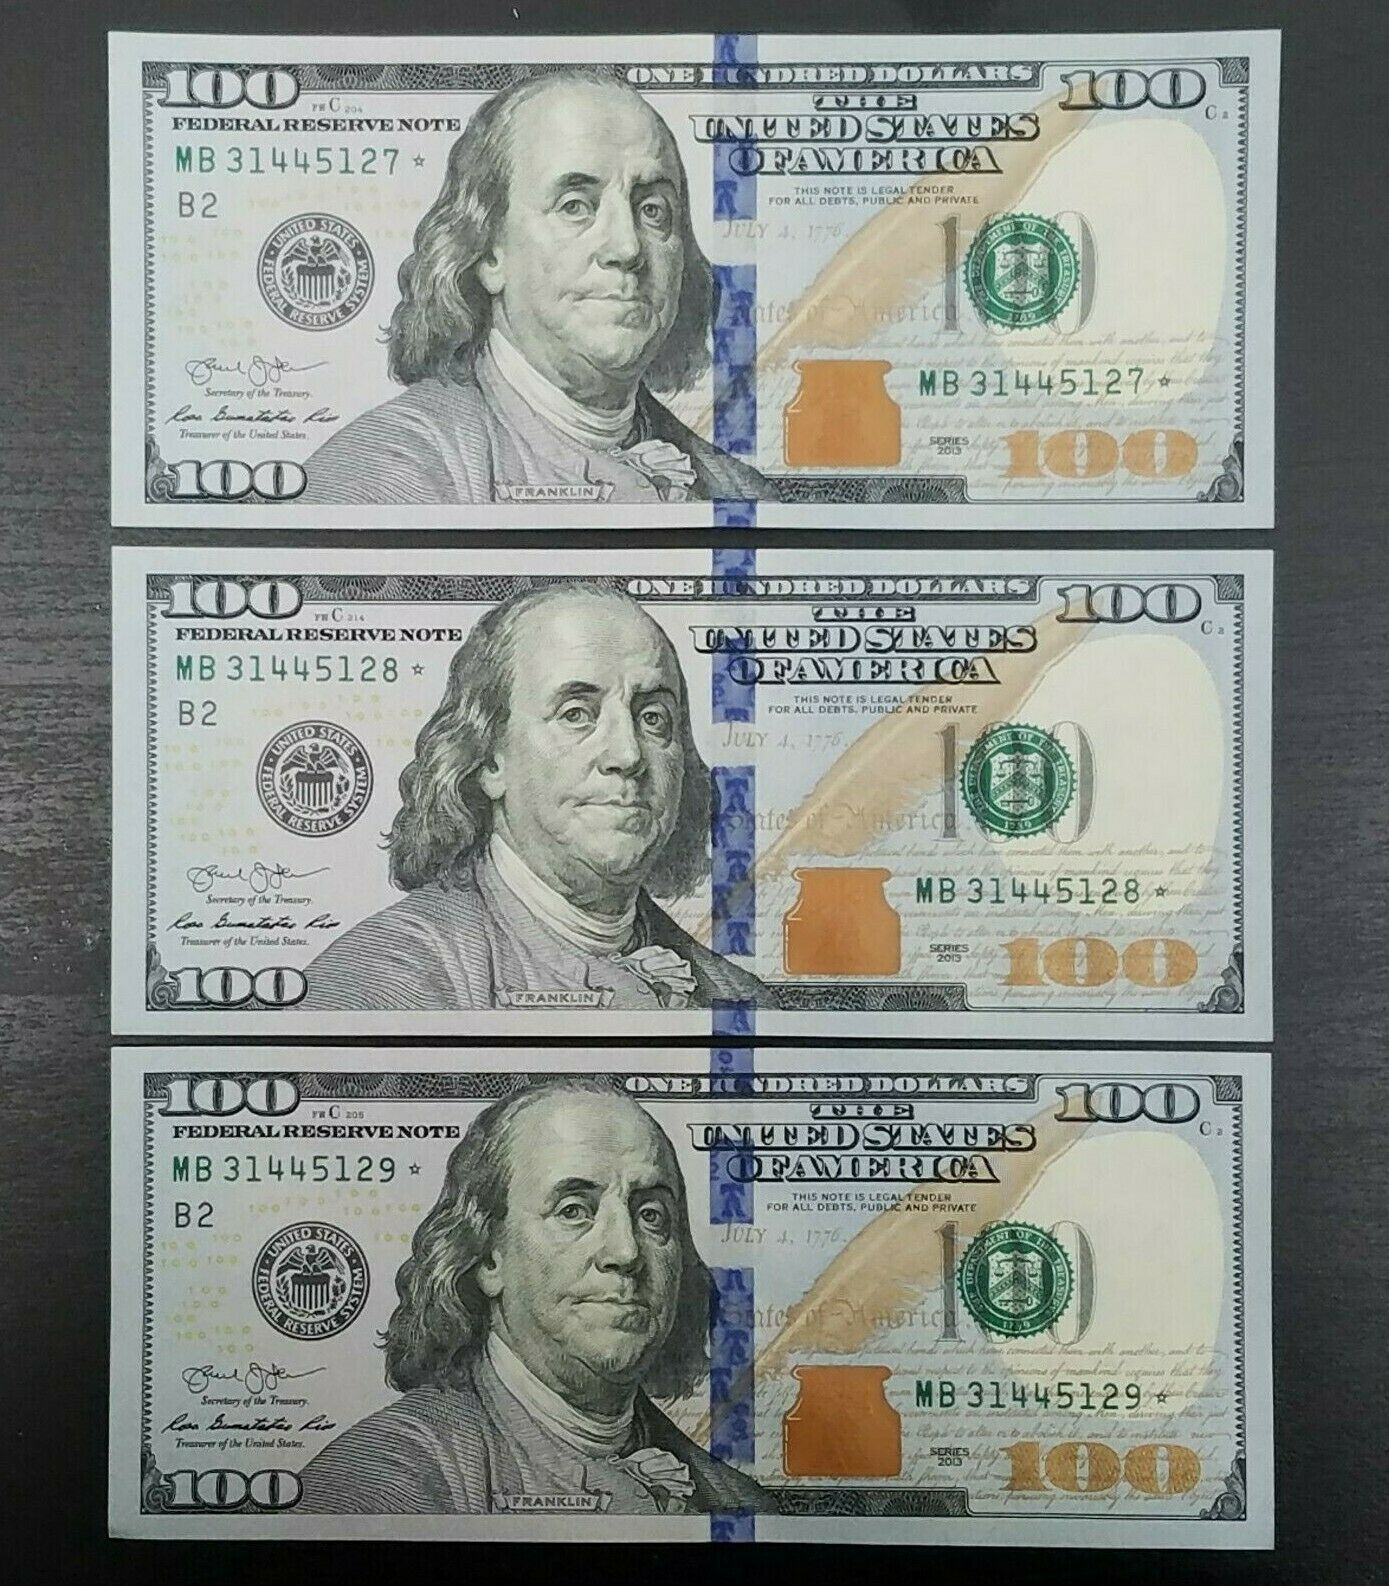 3 Consecutive Serial Numbers Uncirculated 2013 Star Note 100 Dollar Bill Frn Us Paper Money Ideas Of Us Paper Money 100 Dollar Bill Dollar Bill Dollar